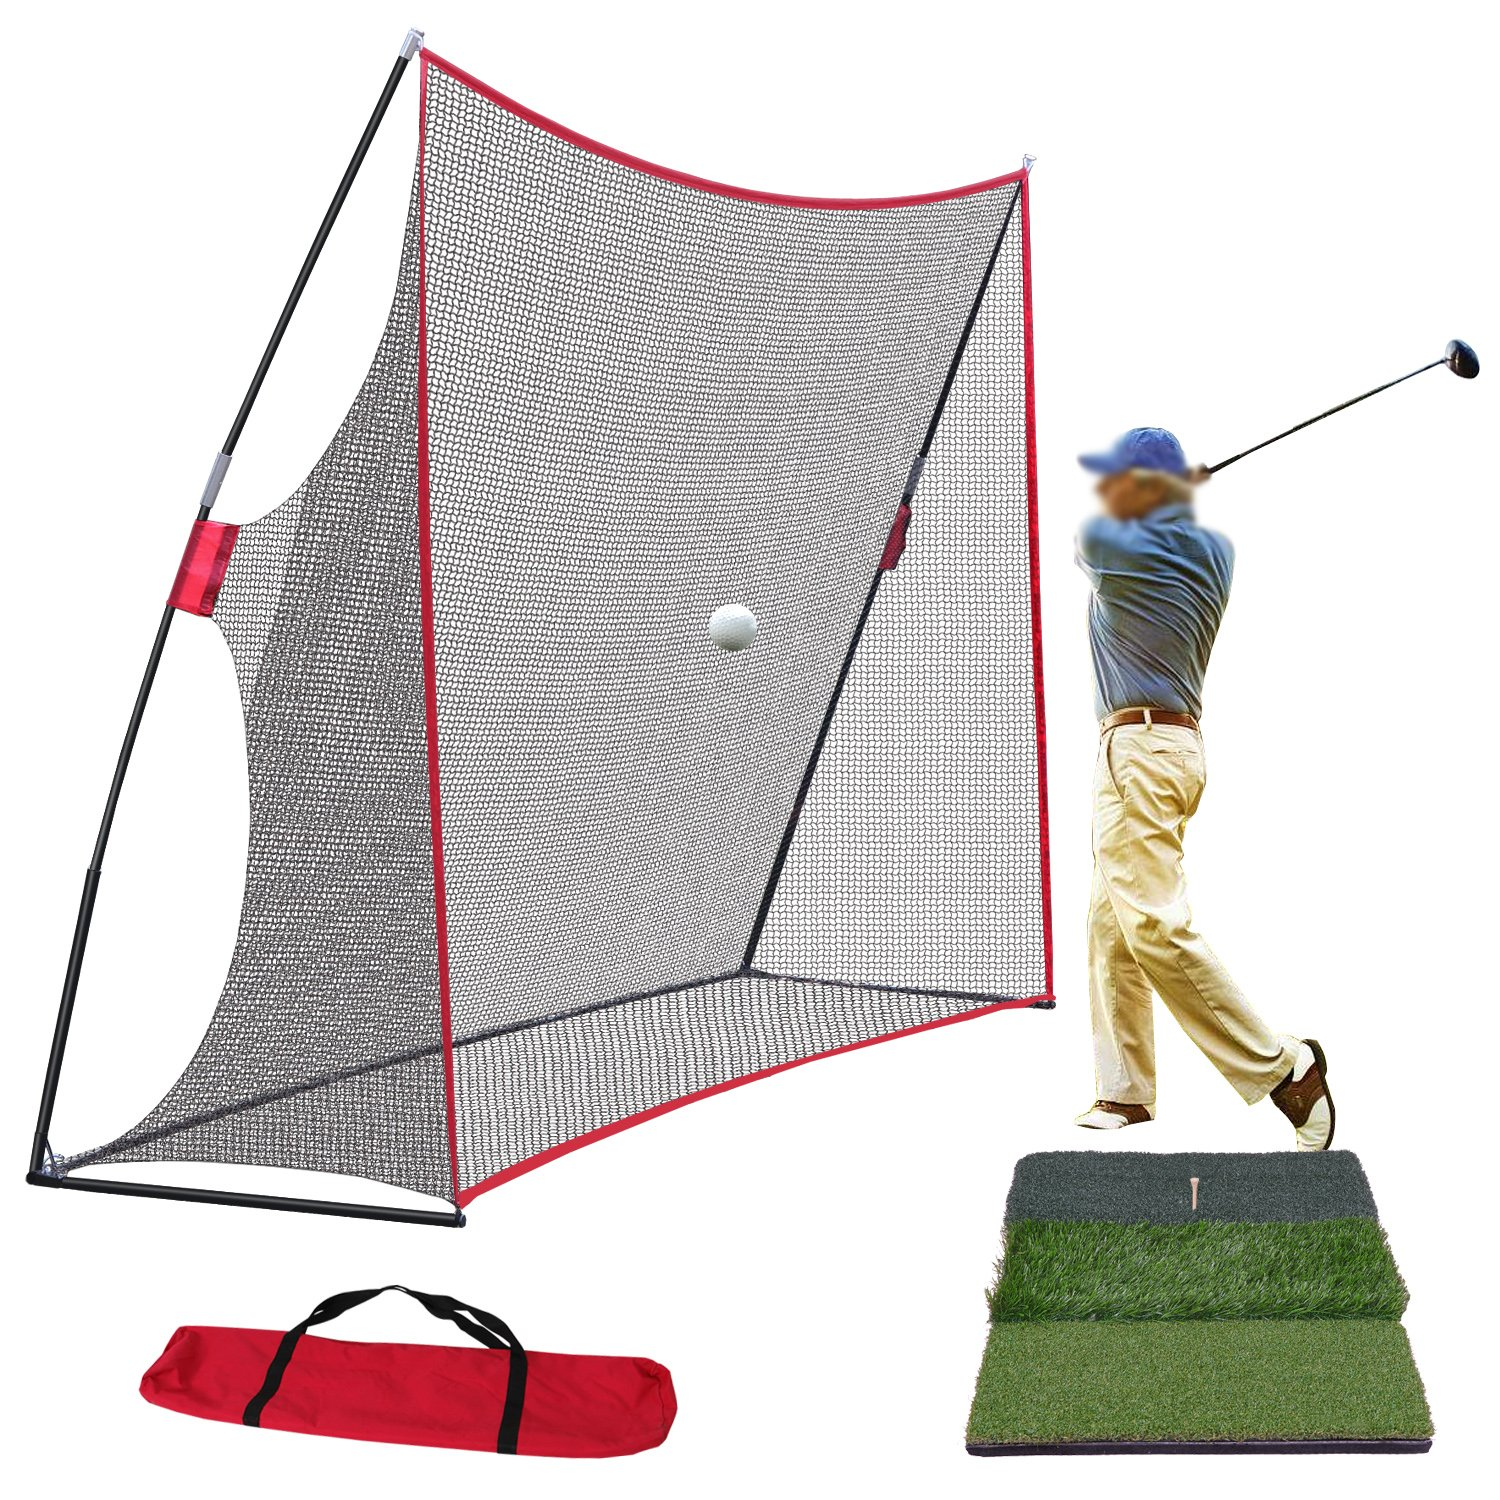 Smartxchoices 10x7ft Large Golf Net + Tri-Turf Golf Hitting Mat Combo Set for Golf Practice Hitting Pitching Hitting Training Driving with Carry Bag Backyard/Indoor/Outdoor